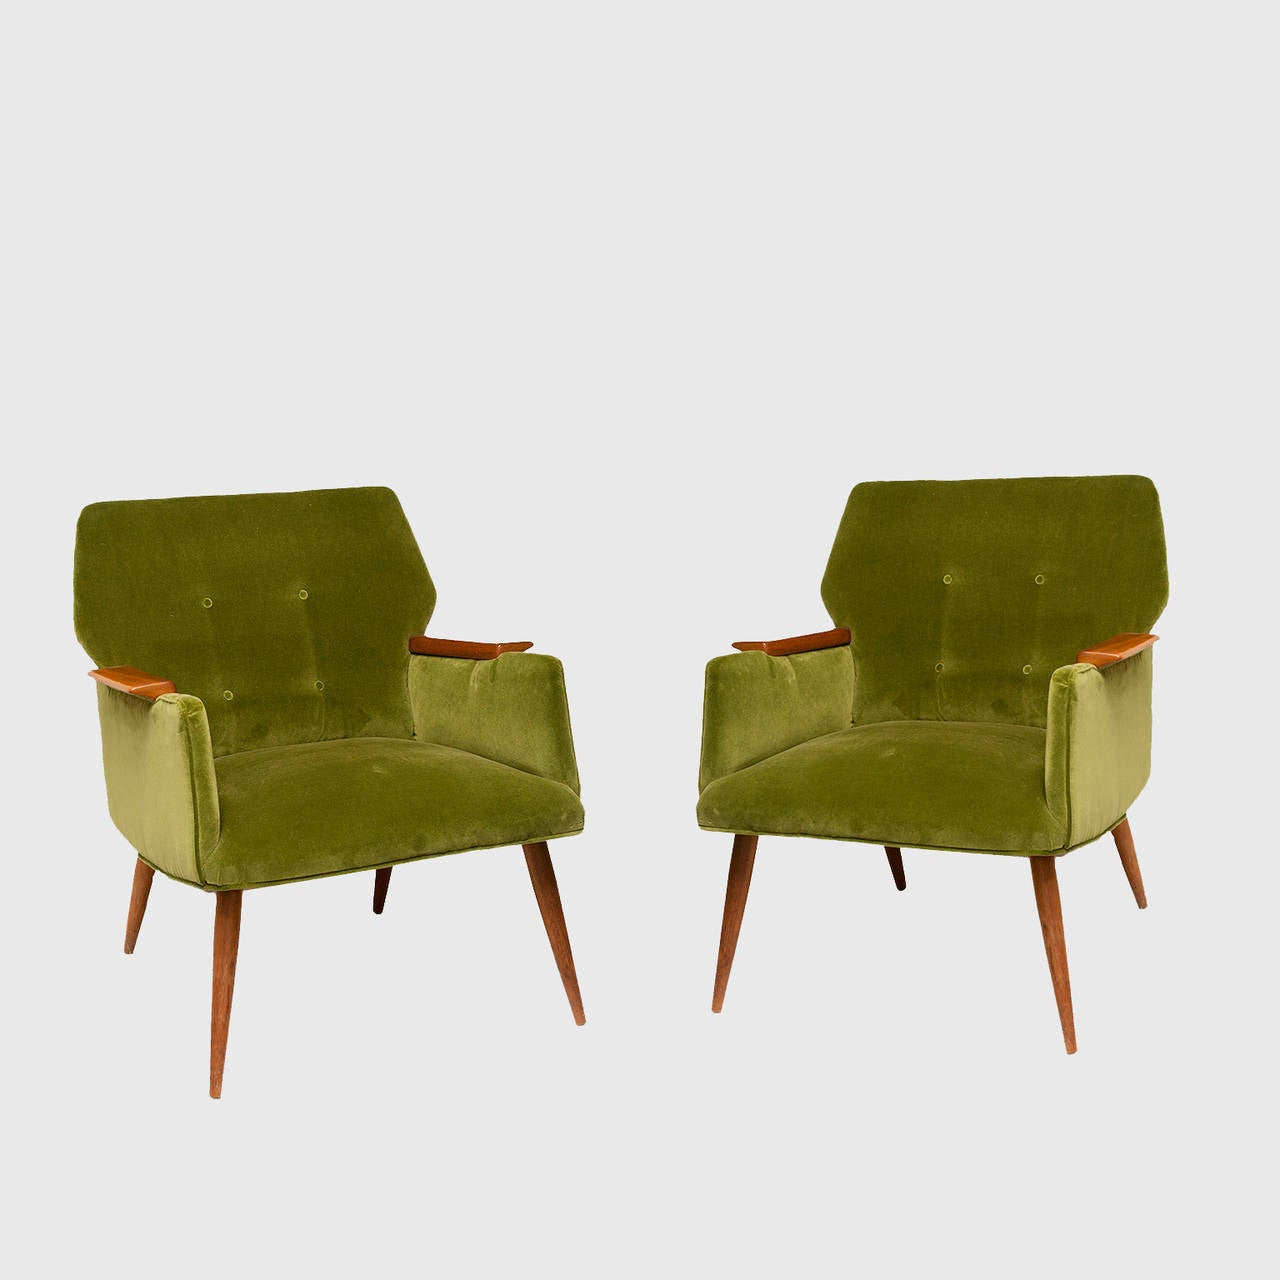 Pair of mid century modern armchairs at 1stdibs for Mid century modern armchairs